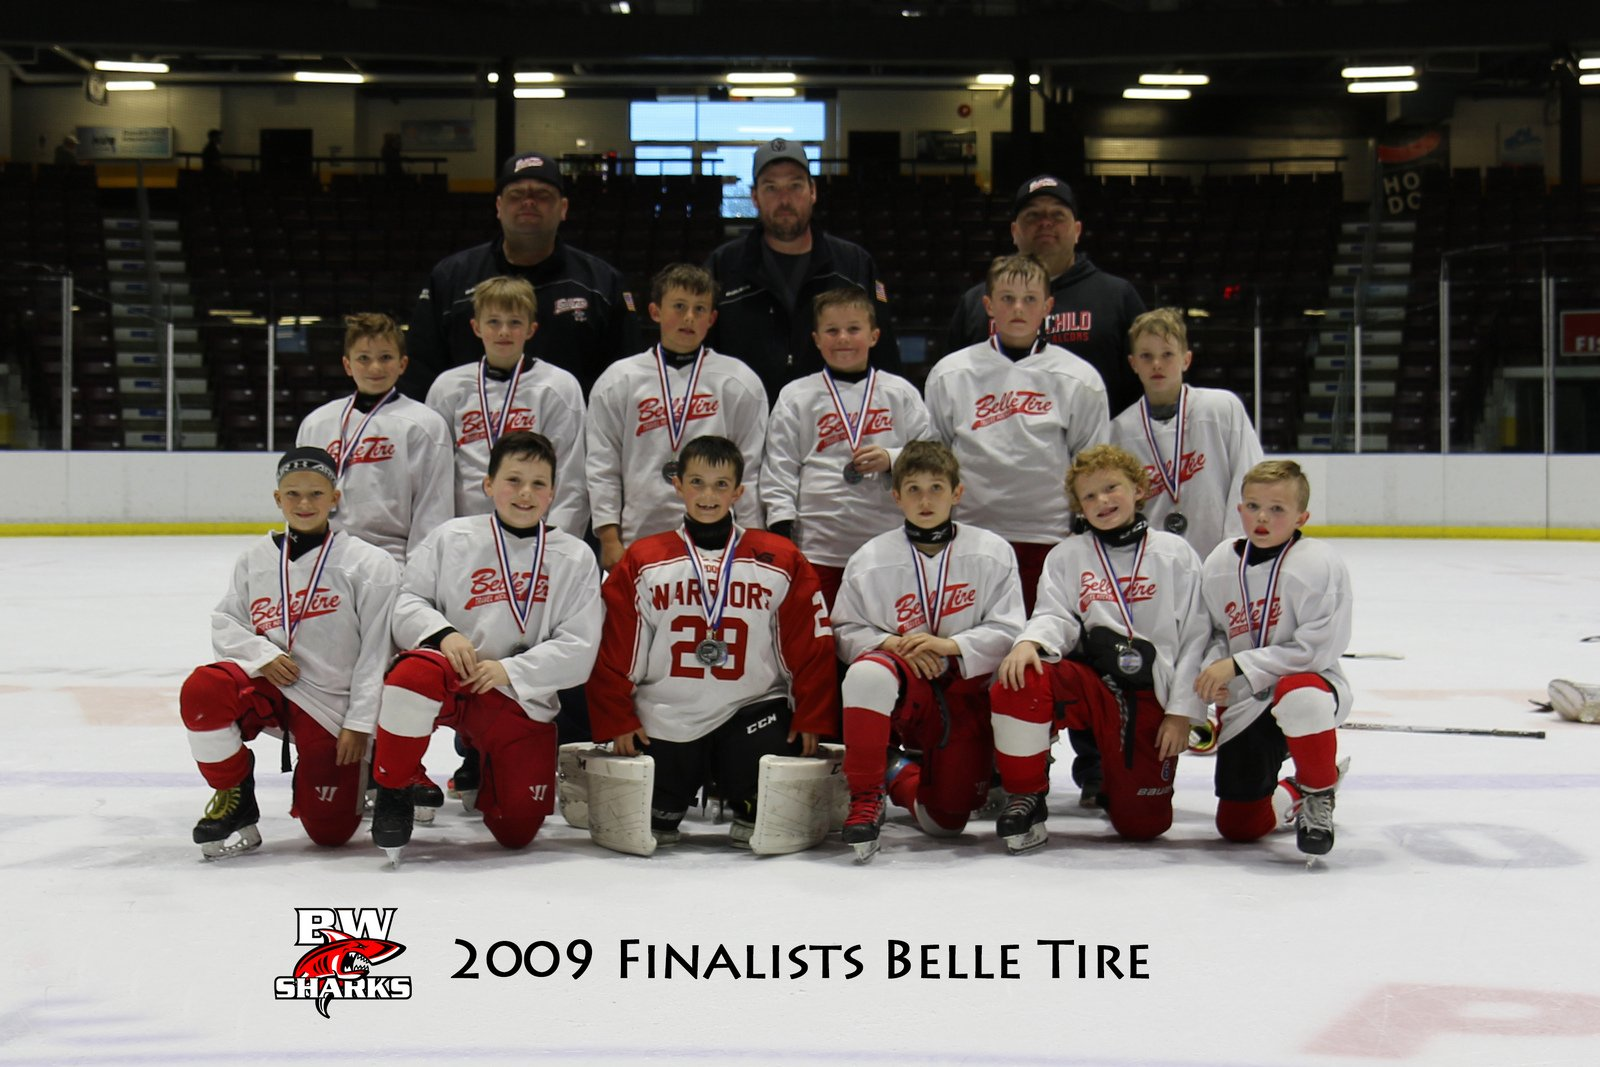 2009-Finalists-Belle-Tire-SilverPeak-Studios-Canada-Sarnia-Bluewater-Sharks-Tournament-001